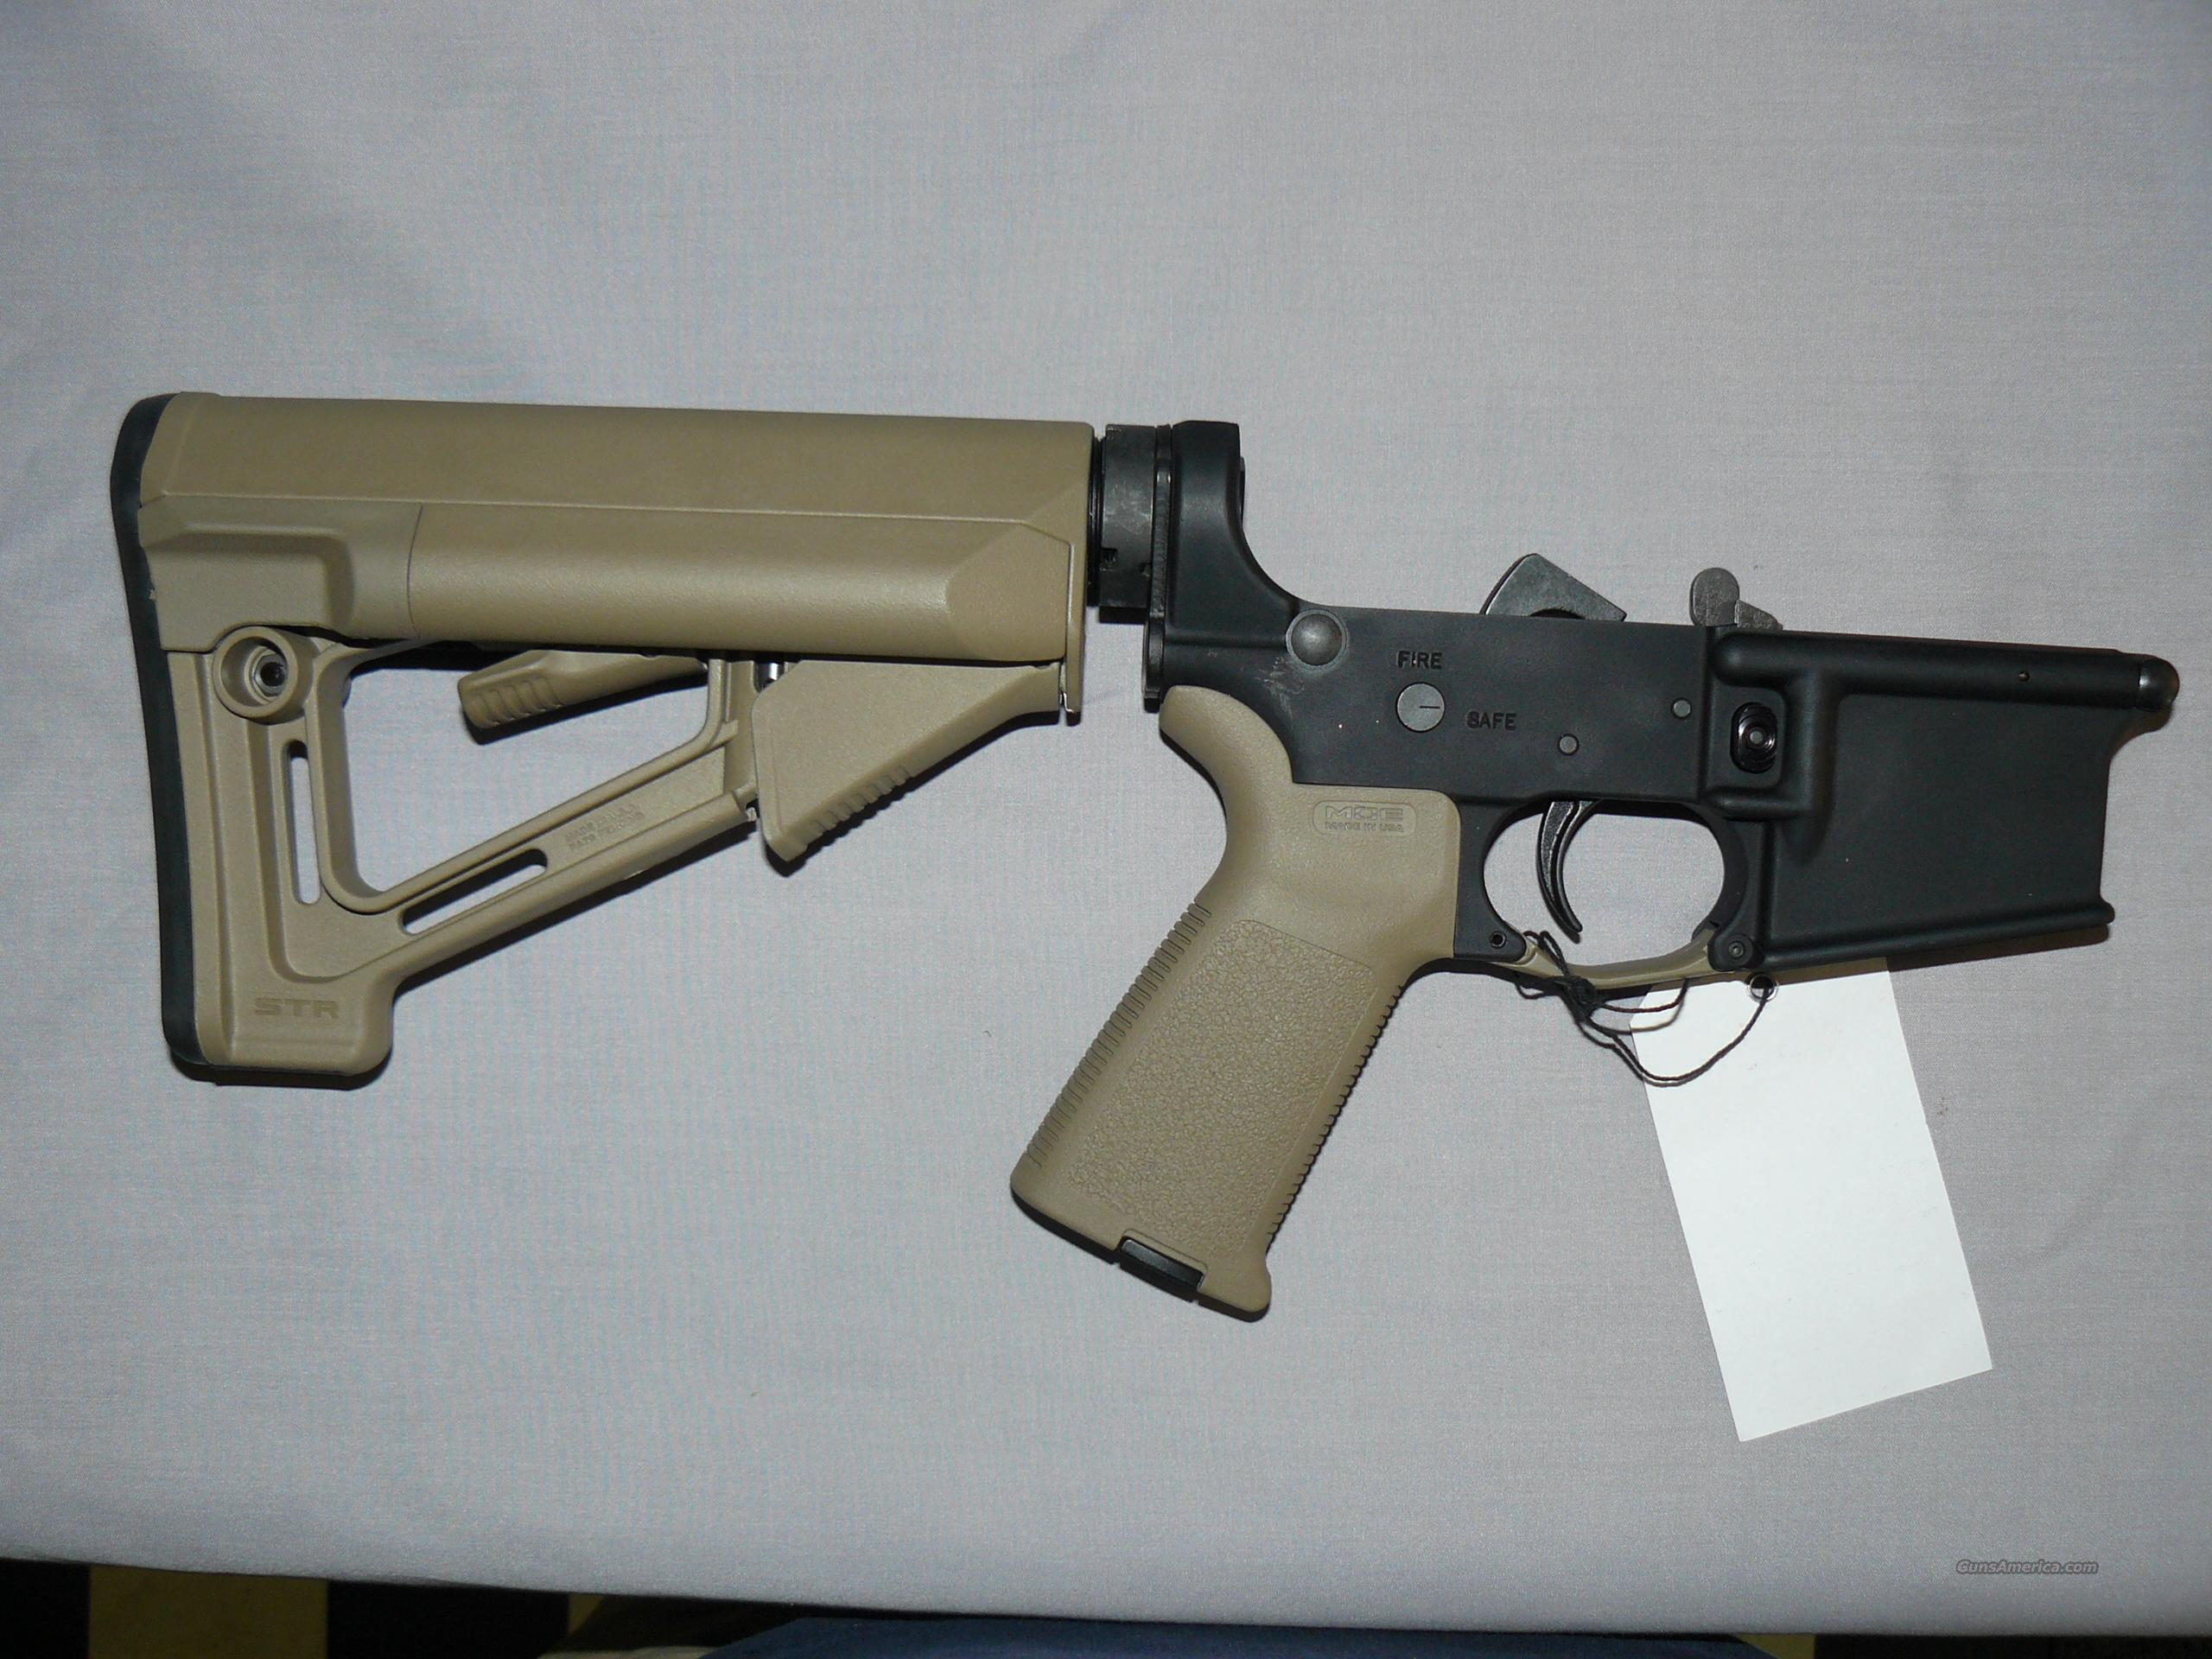 MAGPUL MOE STR FDE COMPLETE STAG AR 15 LOWER  Guns > Rifles > AR-15 Rifles - Small Manufacturers > Lower Only